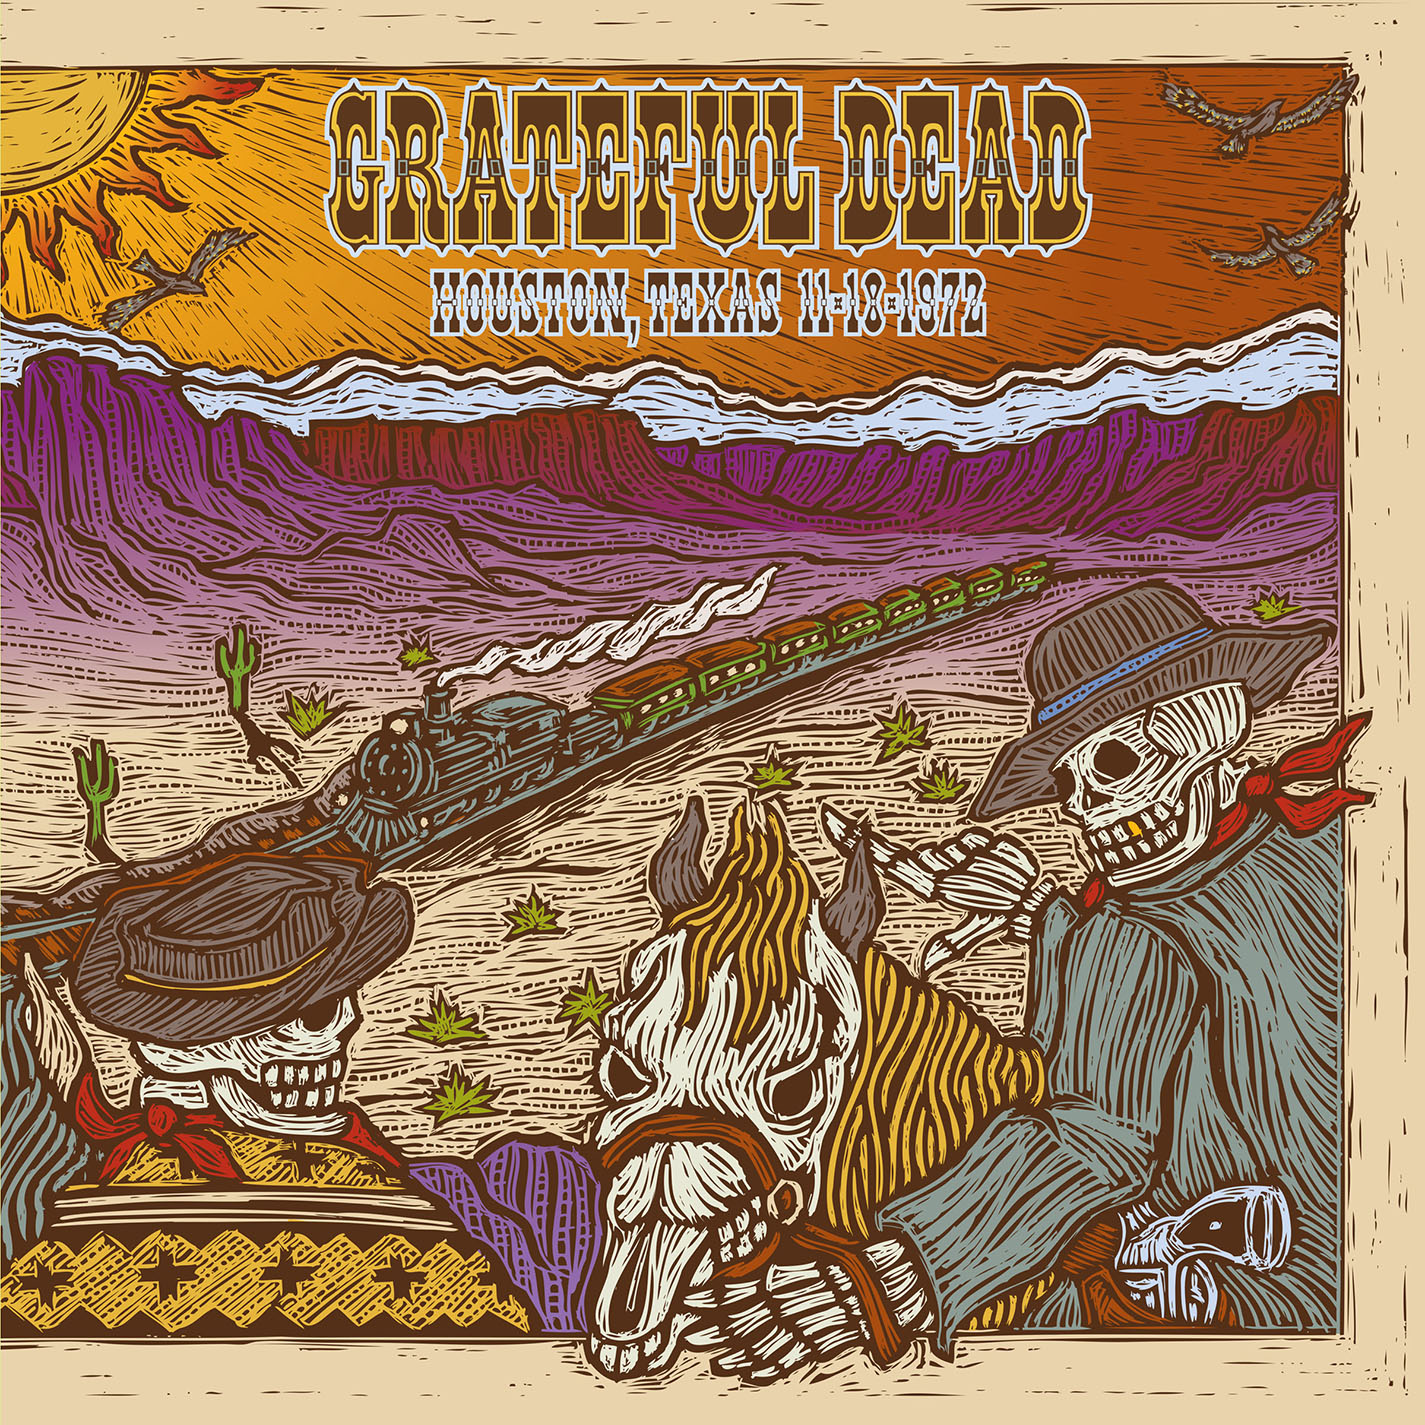 Grateful Dead Houston TX 11/18/72 album cover artwork